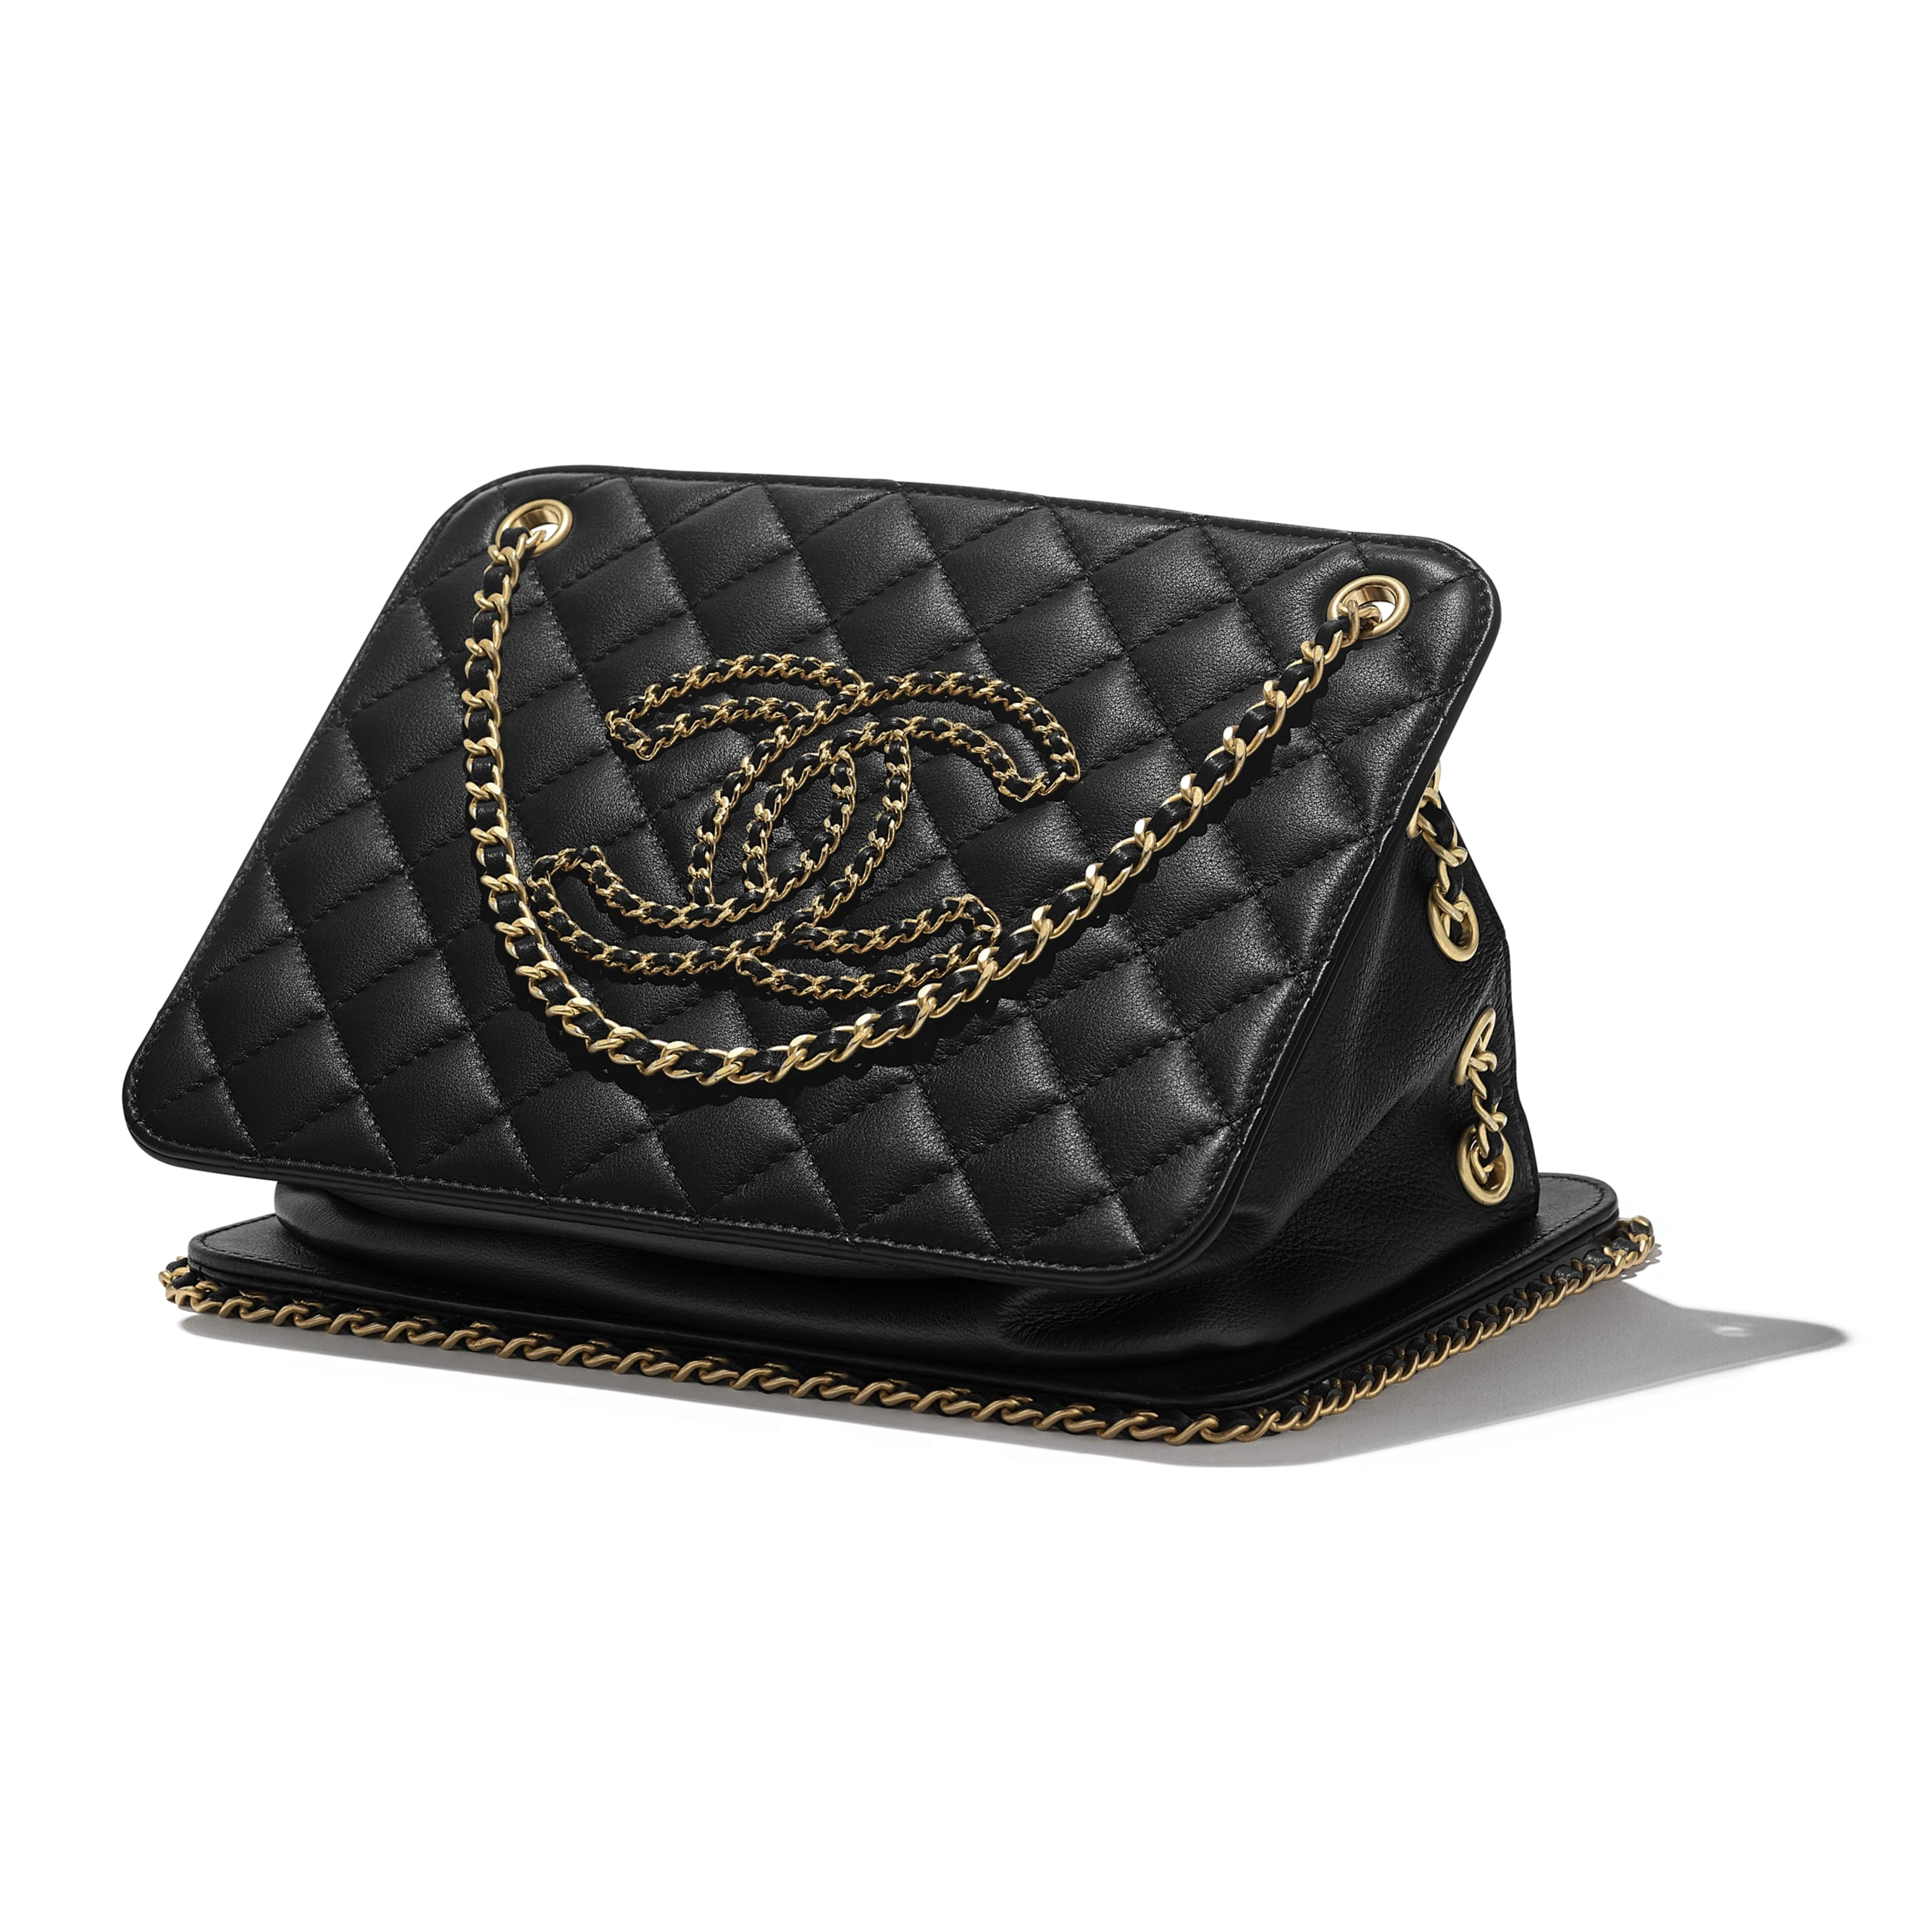 Accordion Handbag - Black - Calfskin & Gold-Tone Metal - CHANEL - Extra view - see standard sized version